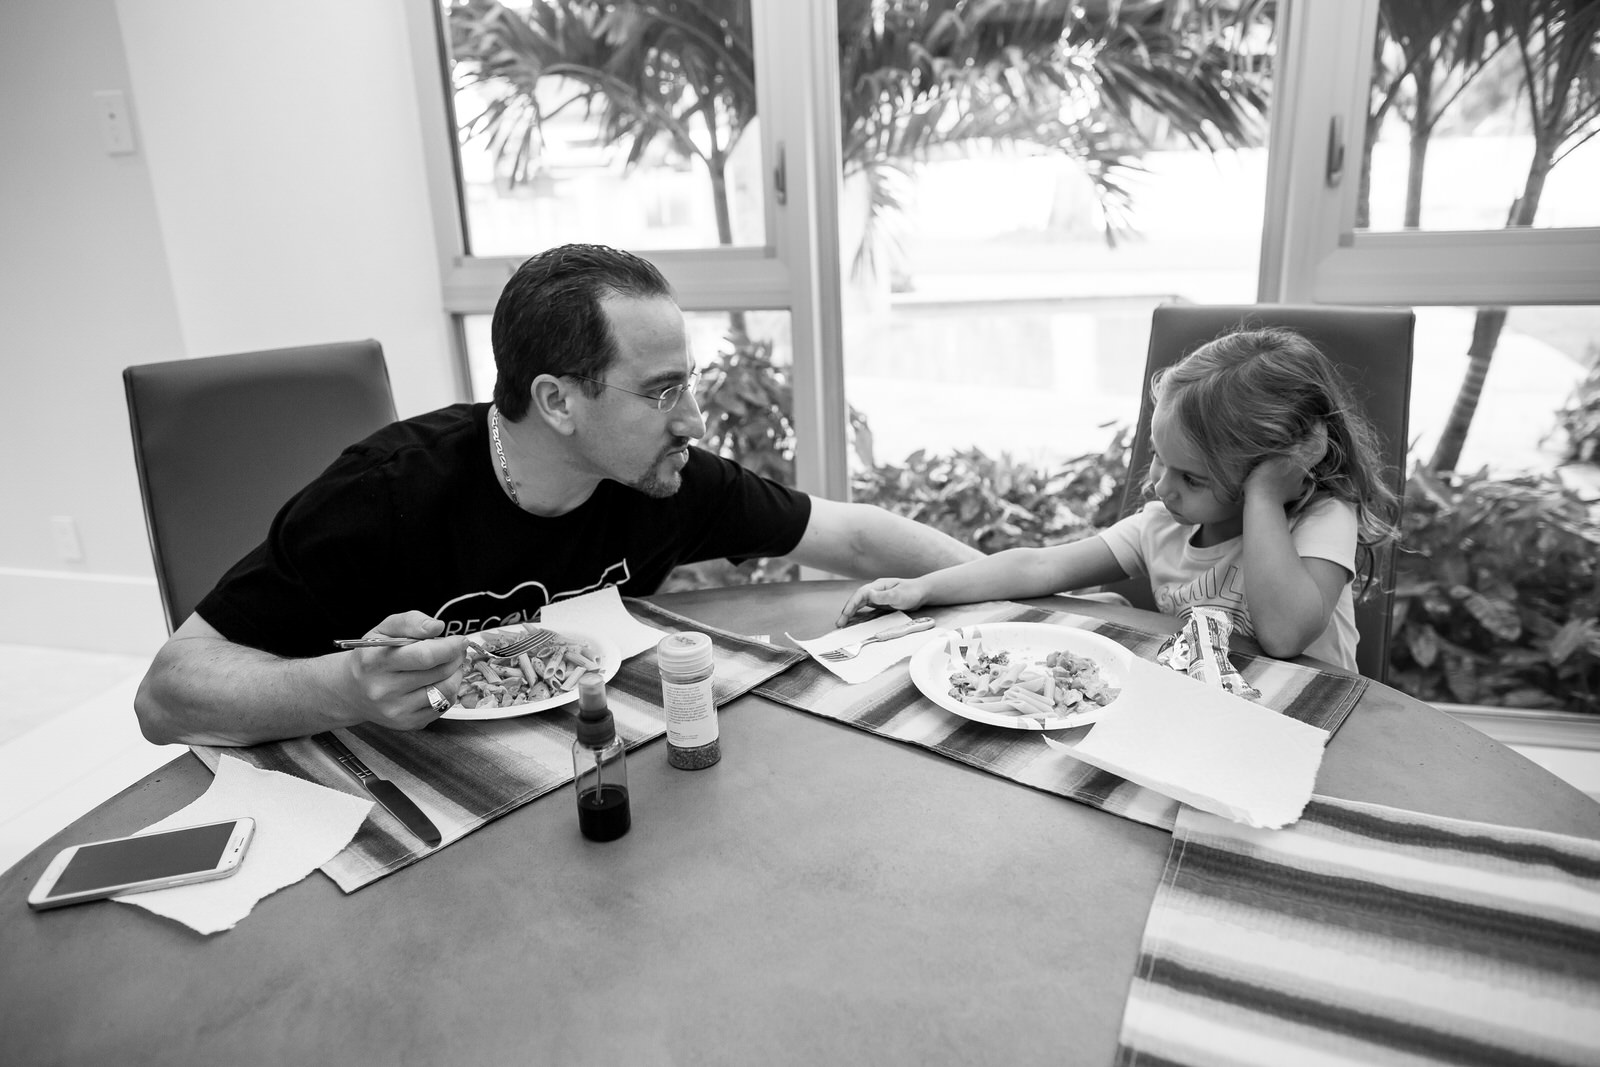 father_daughter_dinner_black_and_white_family_portrait.jpg